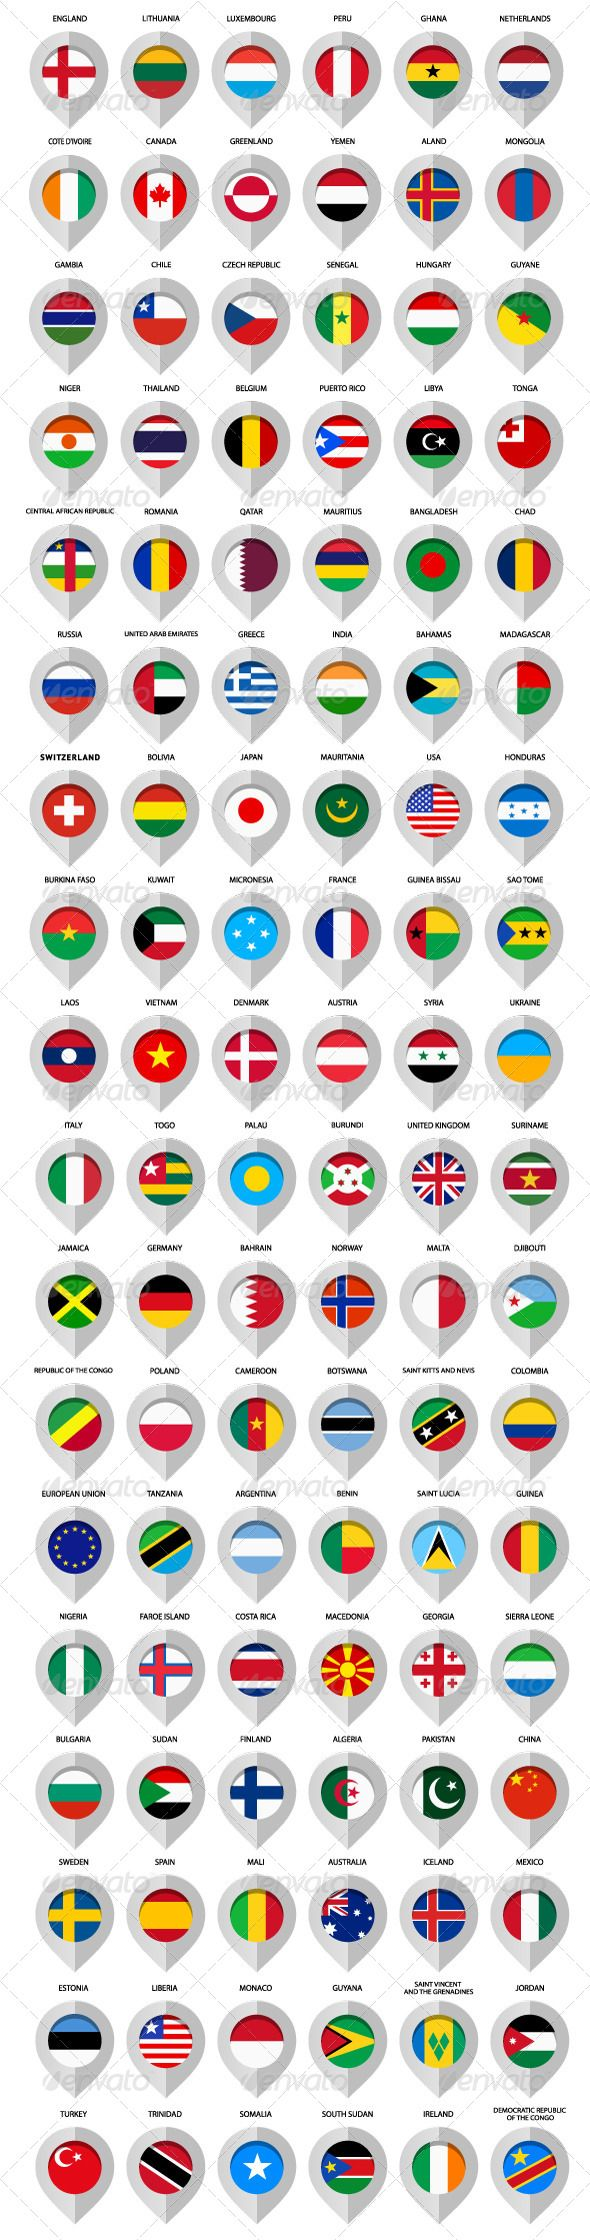 best 25 mongolia flag ideas on pinterest oysters facts